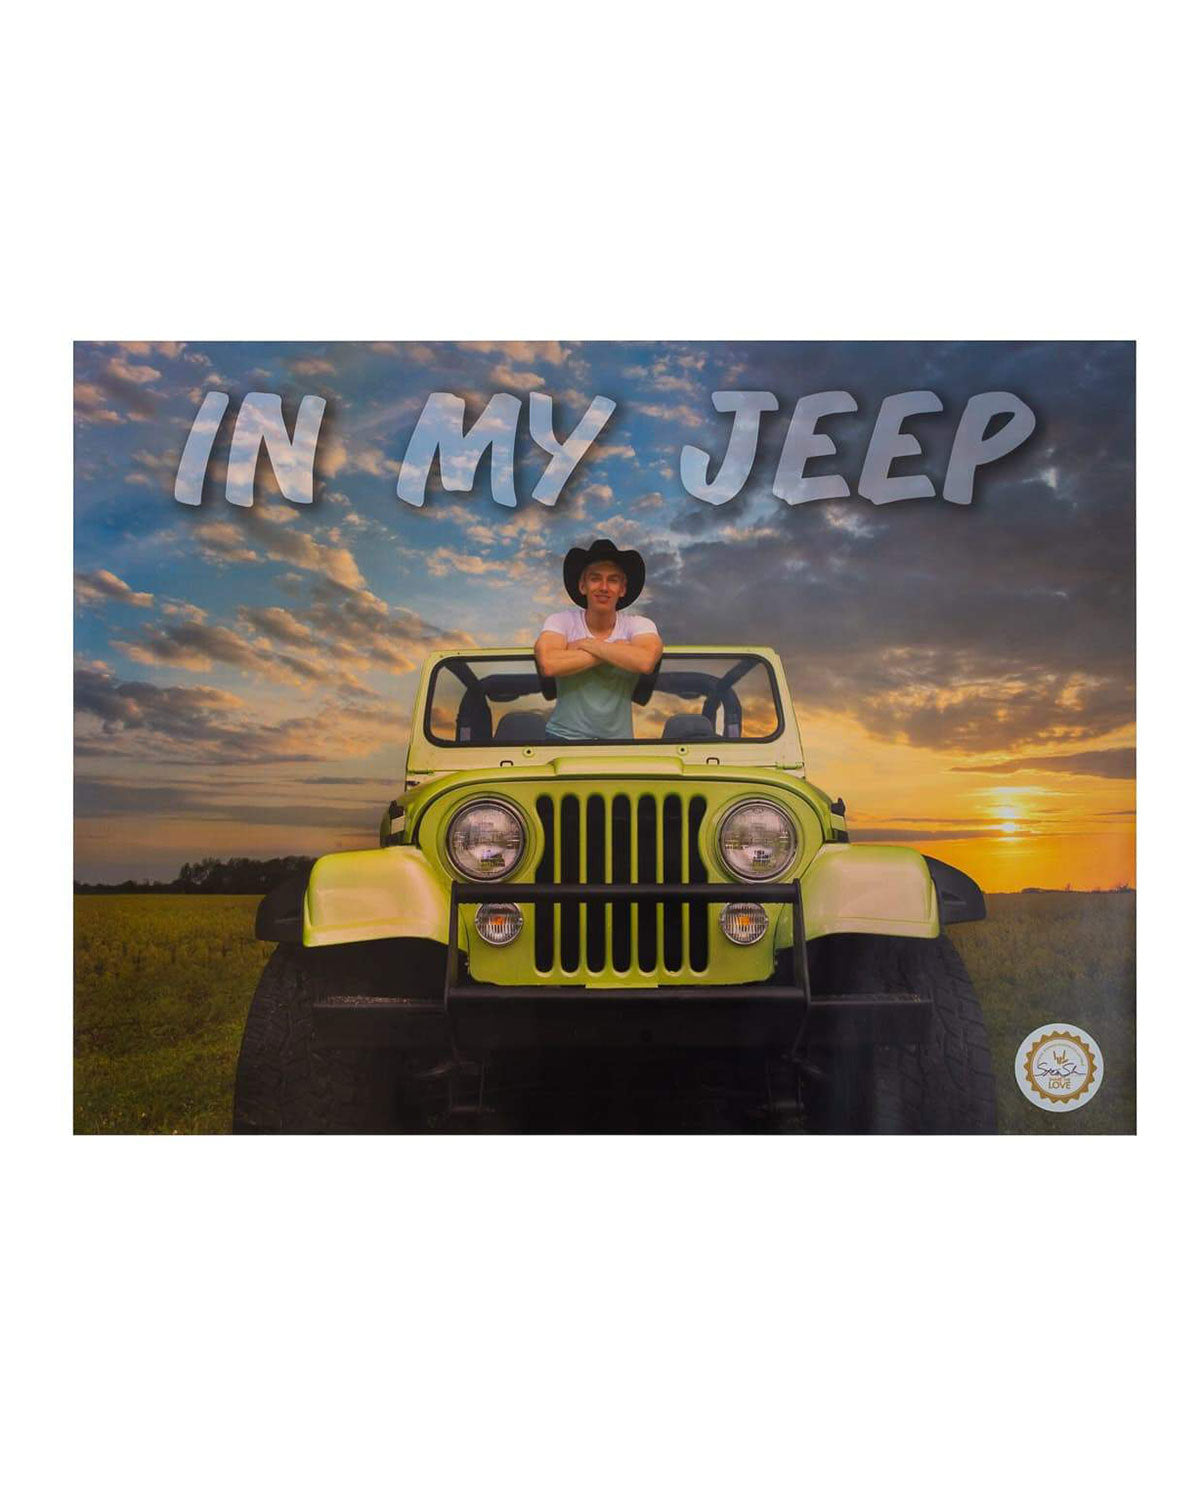 "Limited Edition Stephen Sharer 'In My Jeep' Poster - 18"" x 24"" - SIGNED"